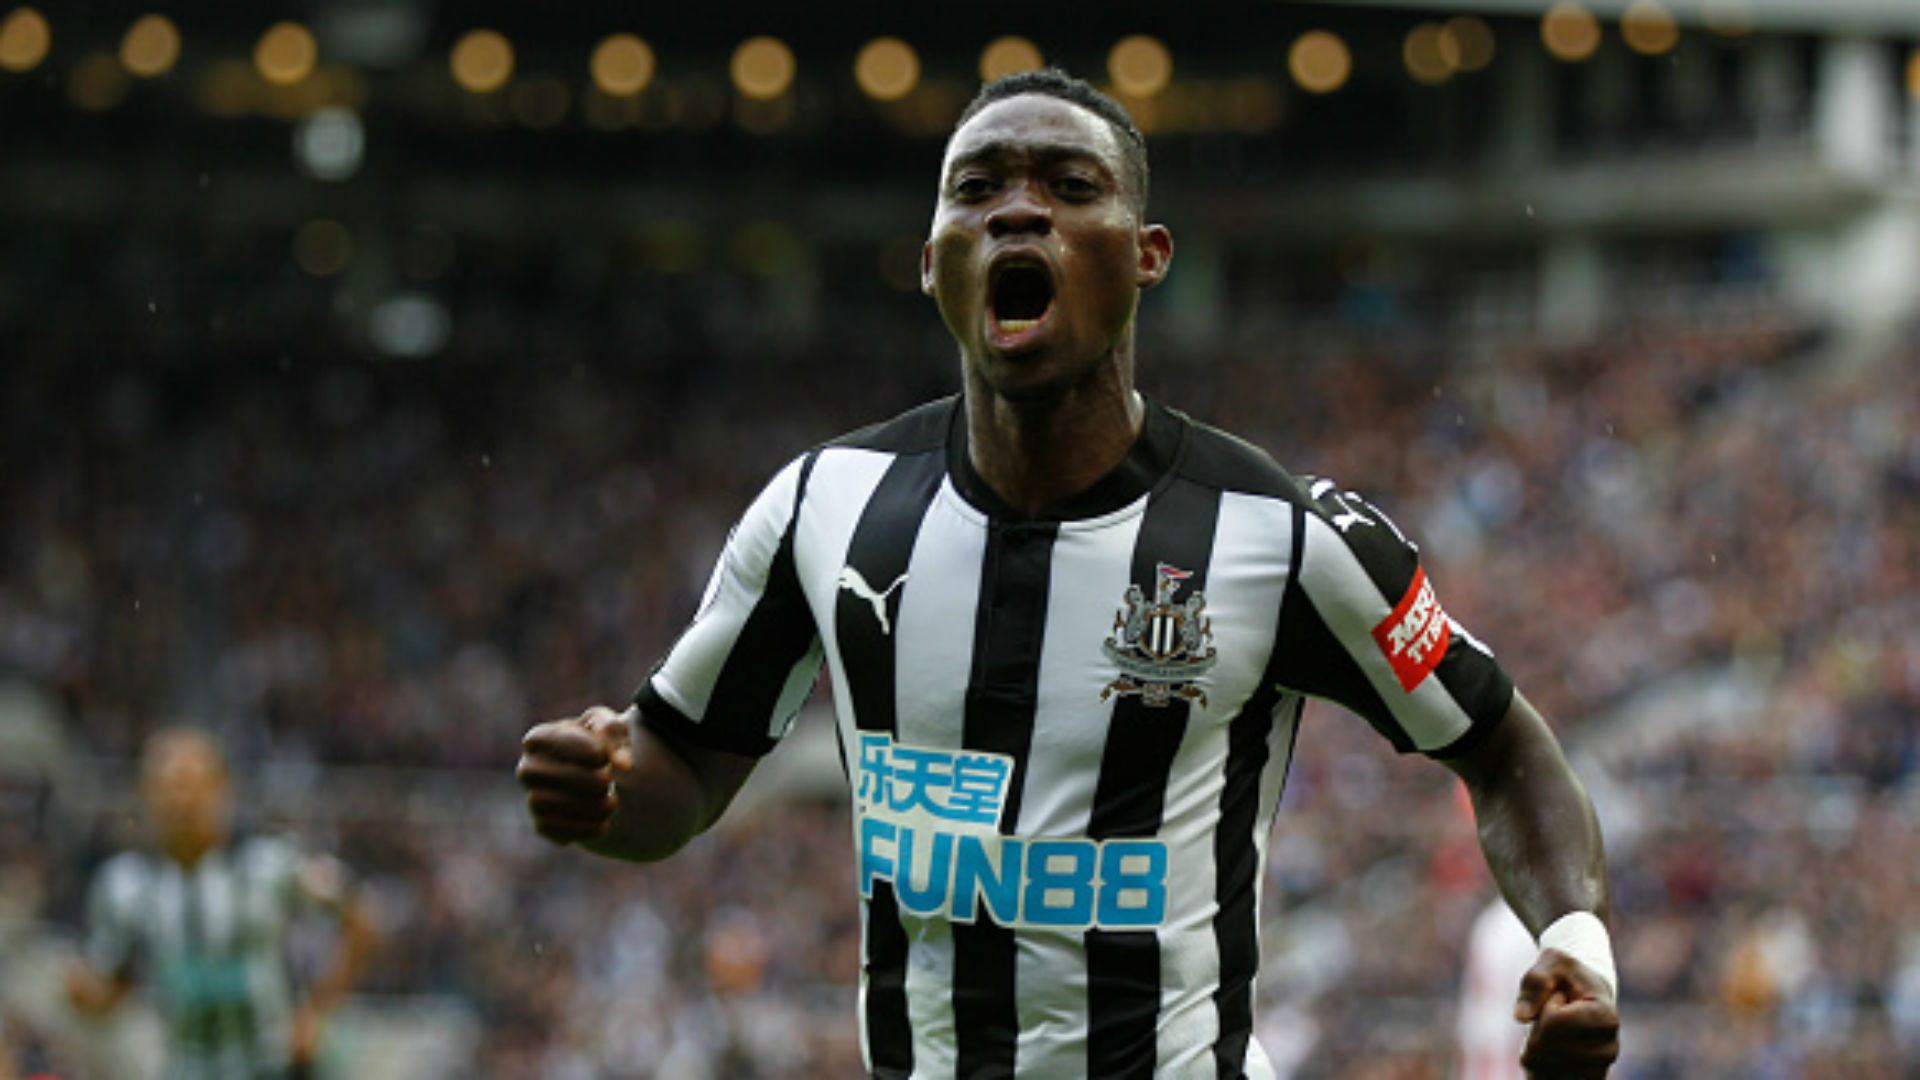 Newcastle moves into top 5 with 3rd straight EPL win